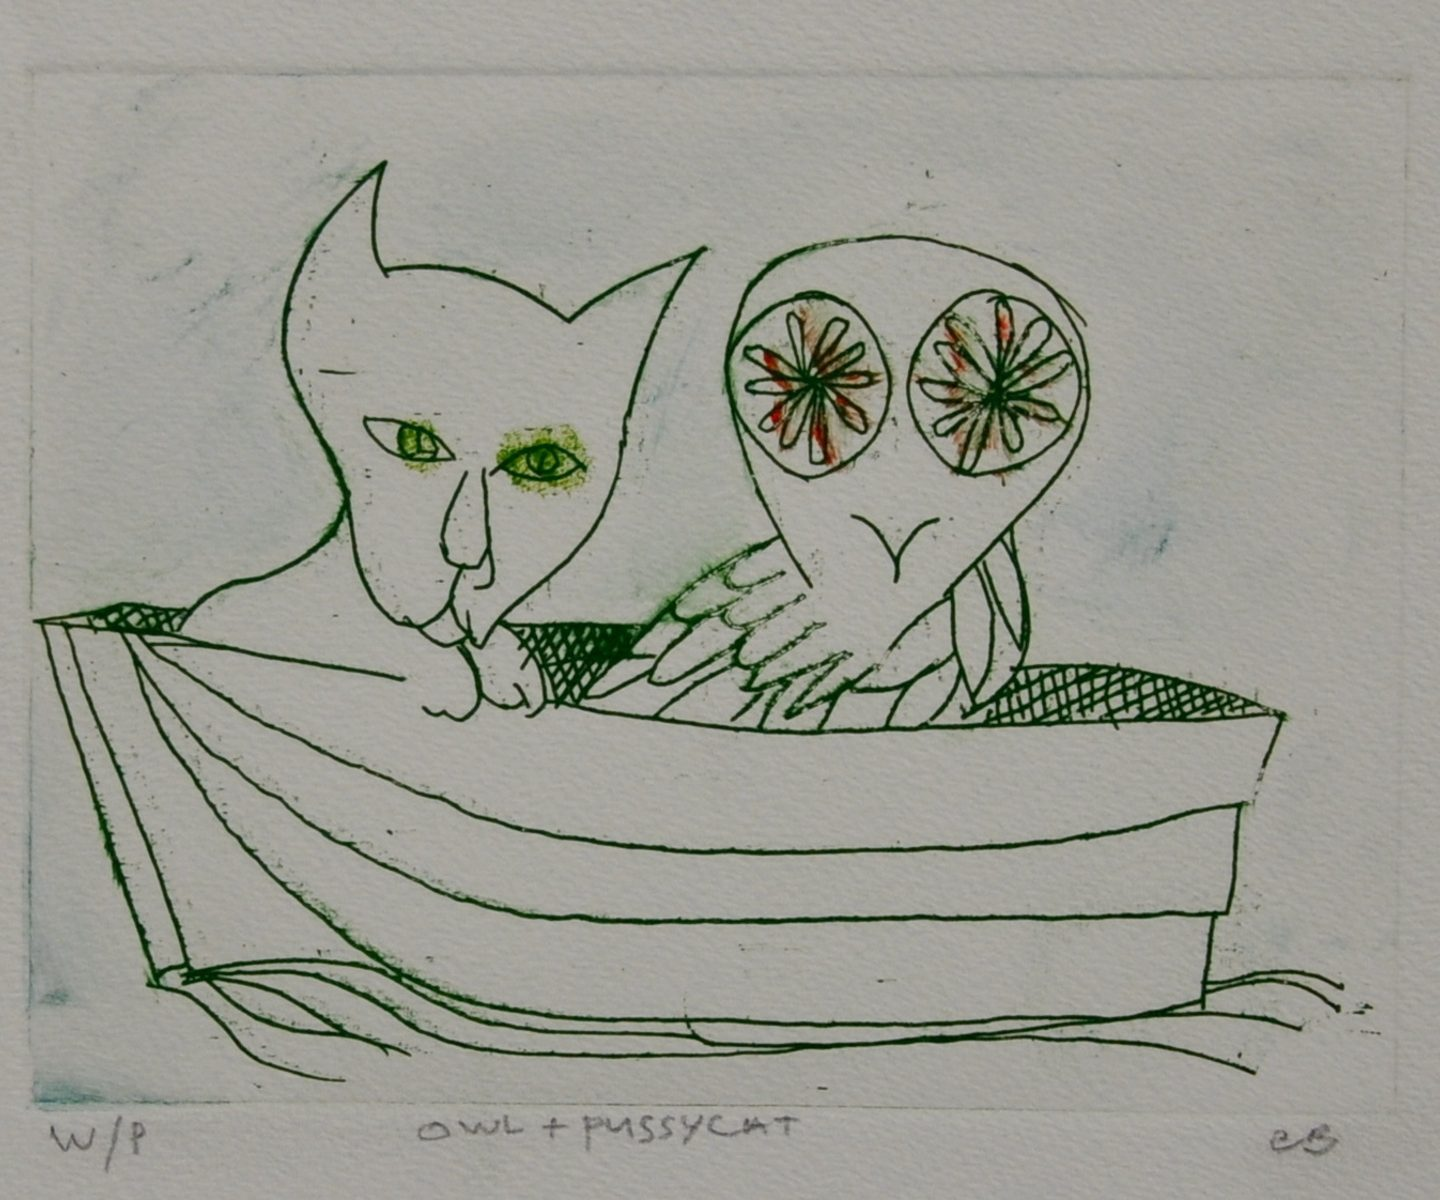 Owl and Pussycat (Working proof)